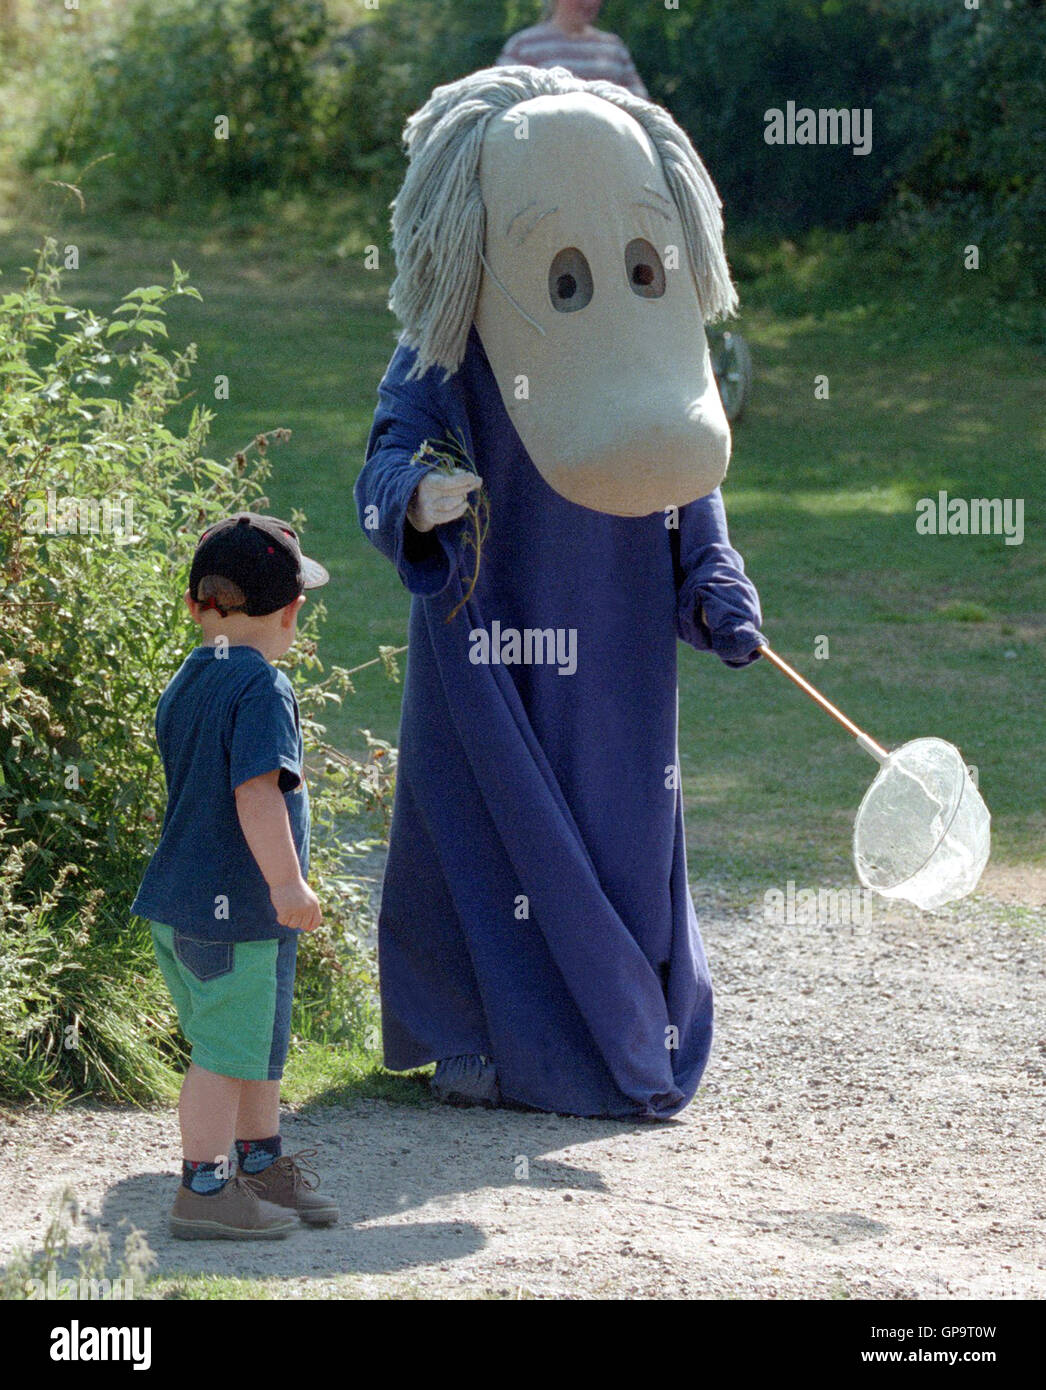 Moomin with children amused by characters from fairy tales Stock Photo